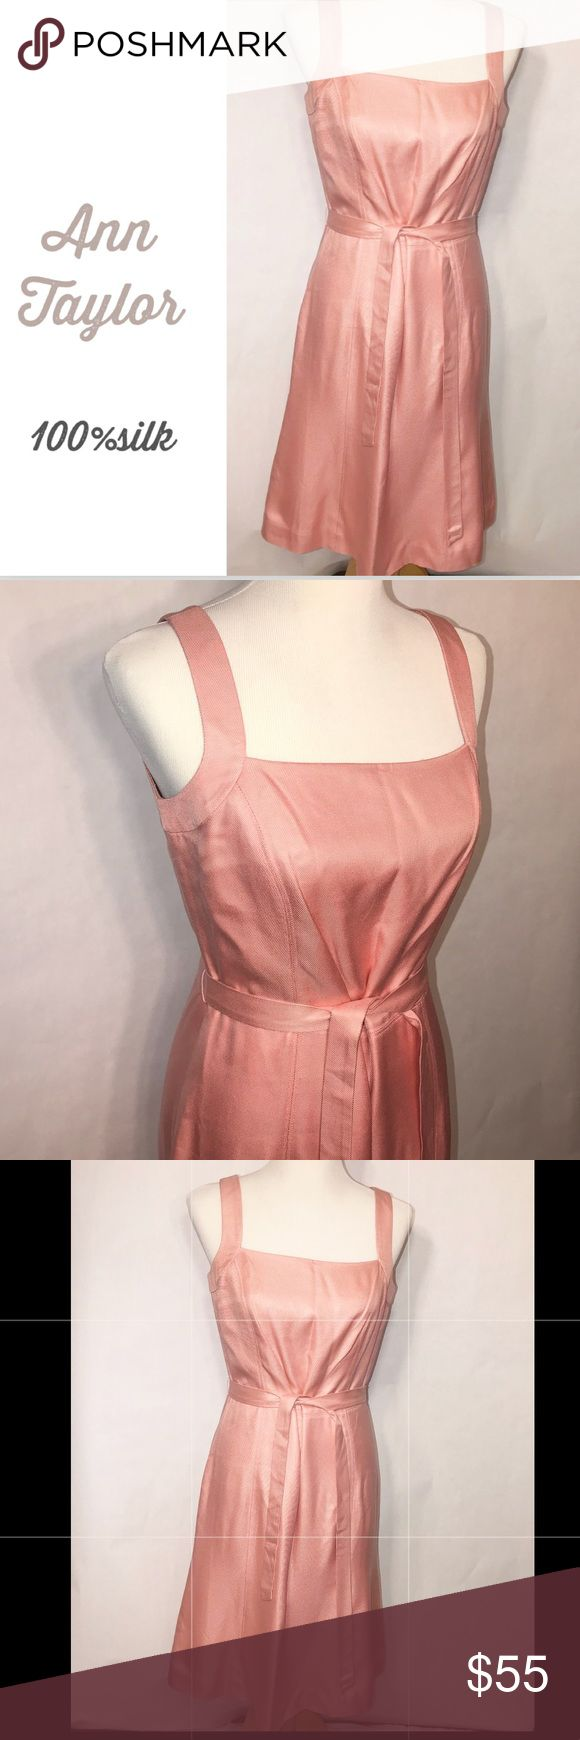 Ann Taylor woven silk pastel dress size 6 Excellent used condition  Woven 100% silk dress Fully lined Freshly dry cleaned  Sleeveless  Waist tie Built in bra strap holder Zipper & eyehook good working order No stains. I see one very small snag on back of dress shown in pic #8 but not noticeable.  Coral-pink pastel color  Perfect for spring parties, Easter, christening, etc  Open to reasonable offers 🛍🛍💕 Ann Taylor Dresses Midi